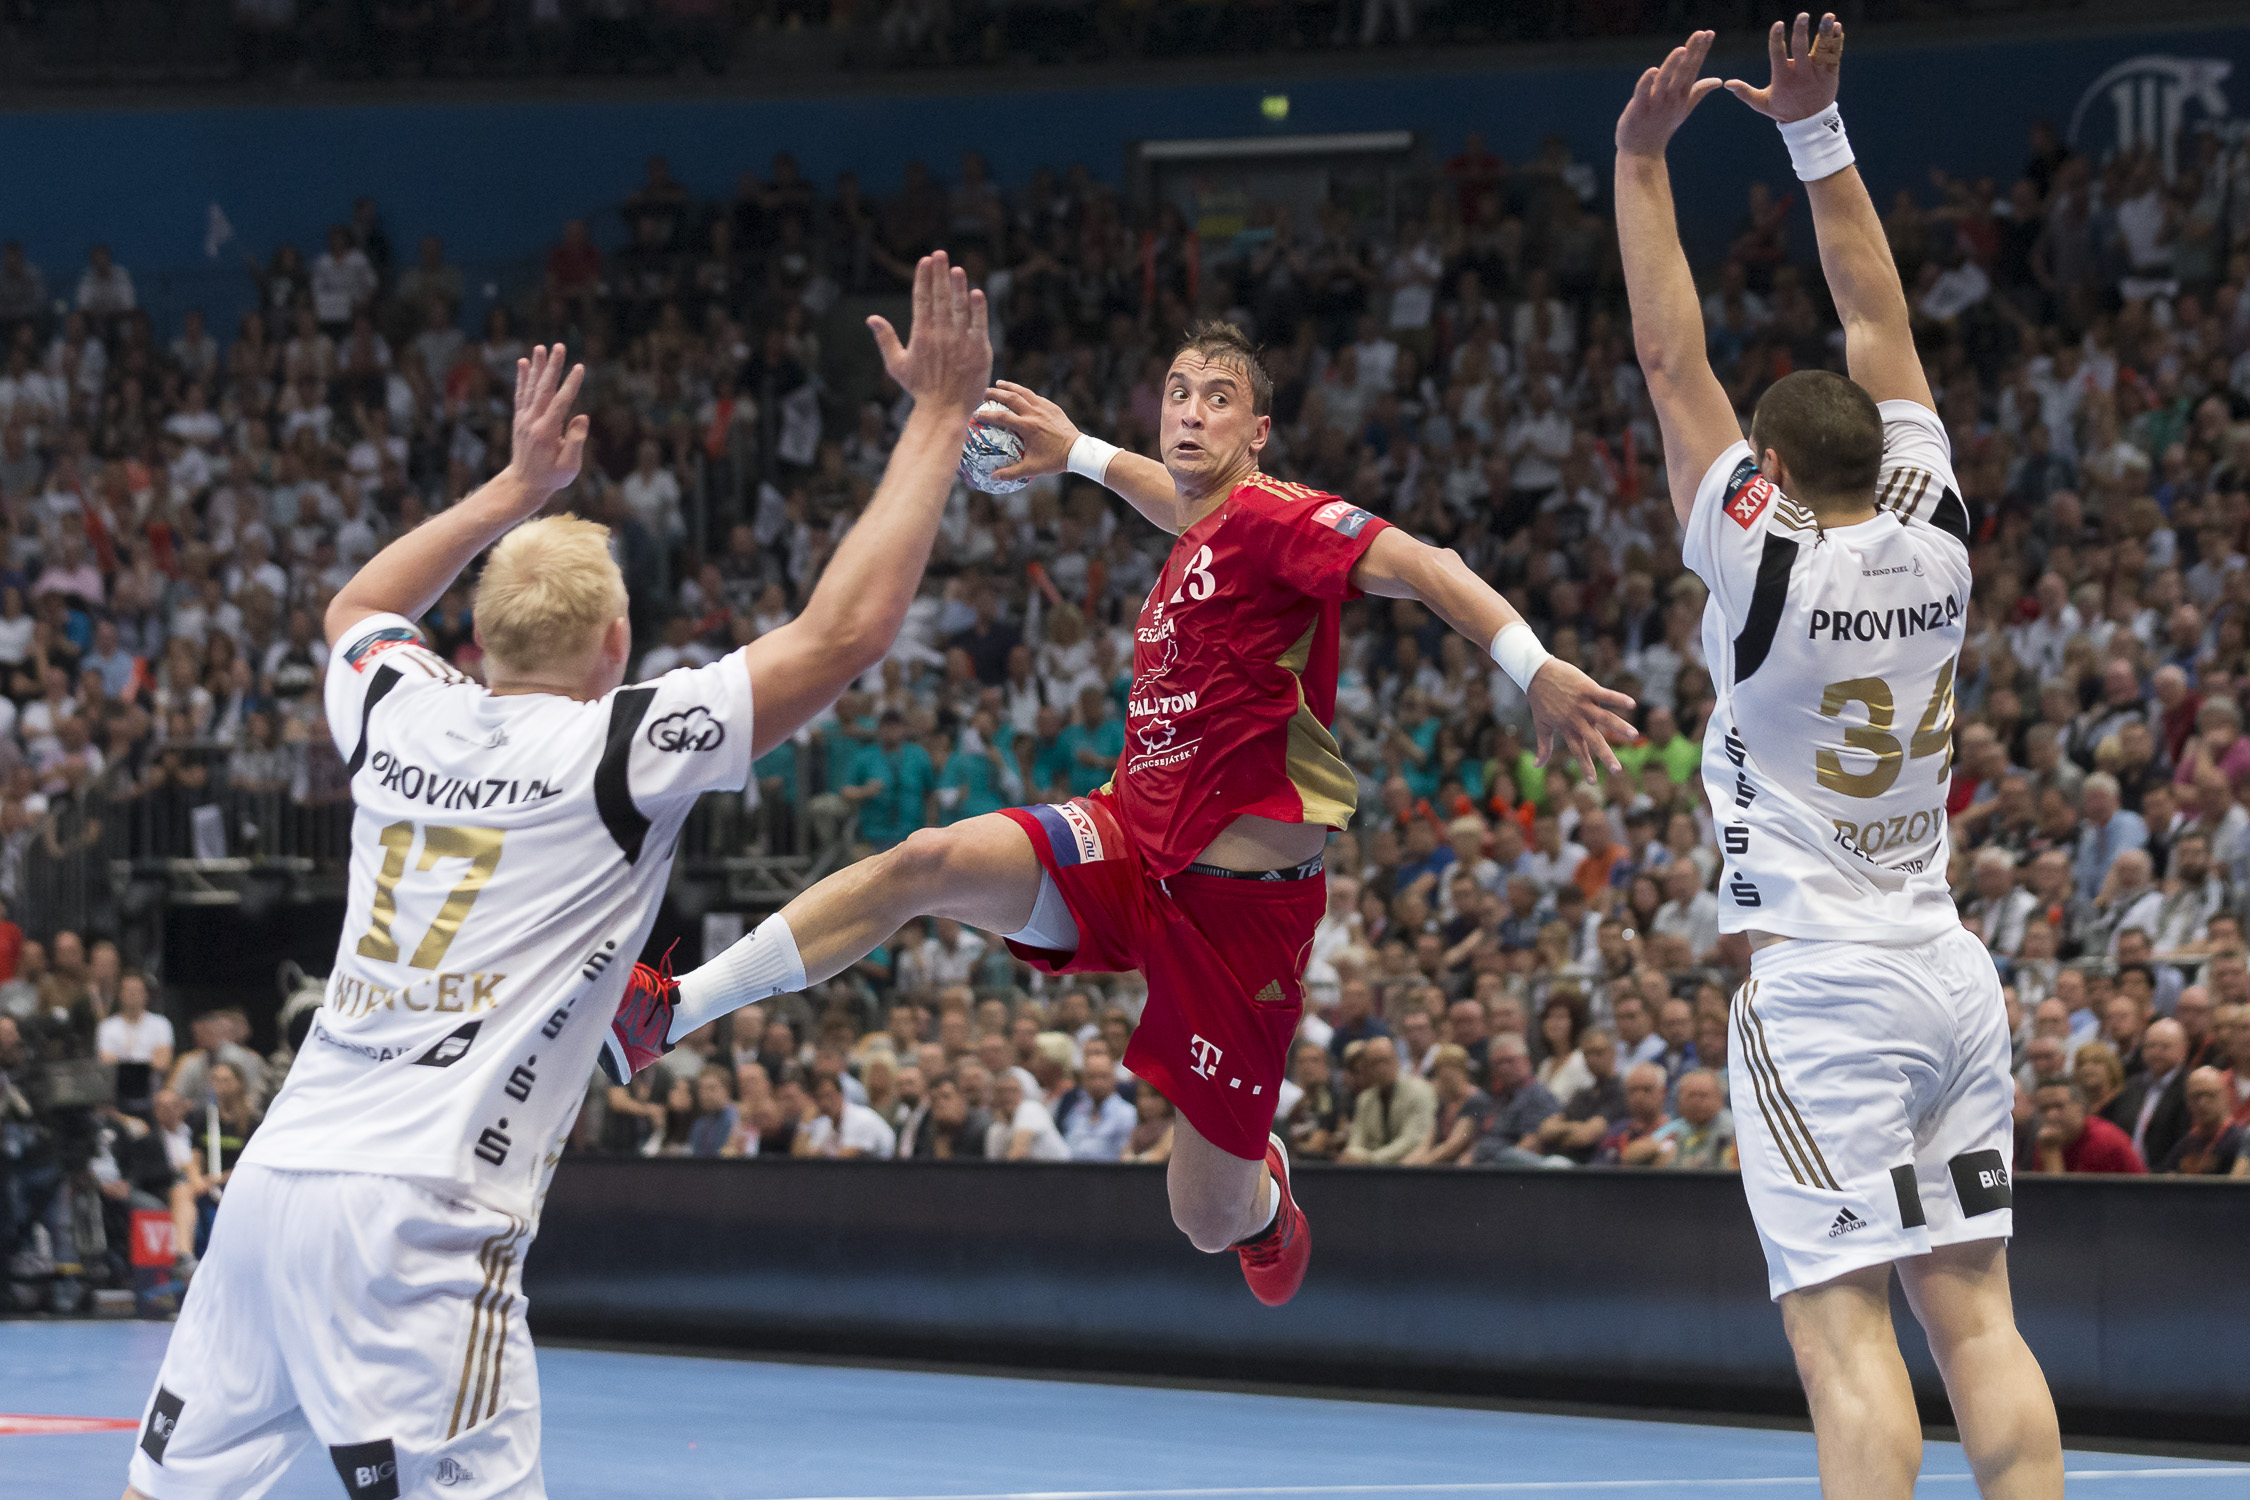 Portfolio(20160528 – EHF Final Four – 2HF Kiel vs Veszprem – 95 (20160528 – Final4 – 913 (BC3T9755 2)))